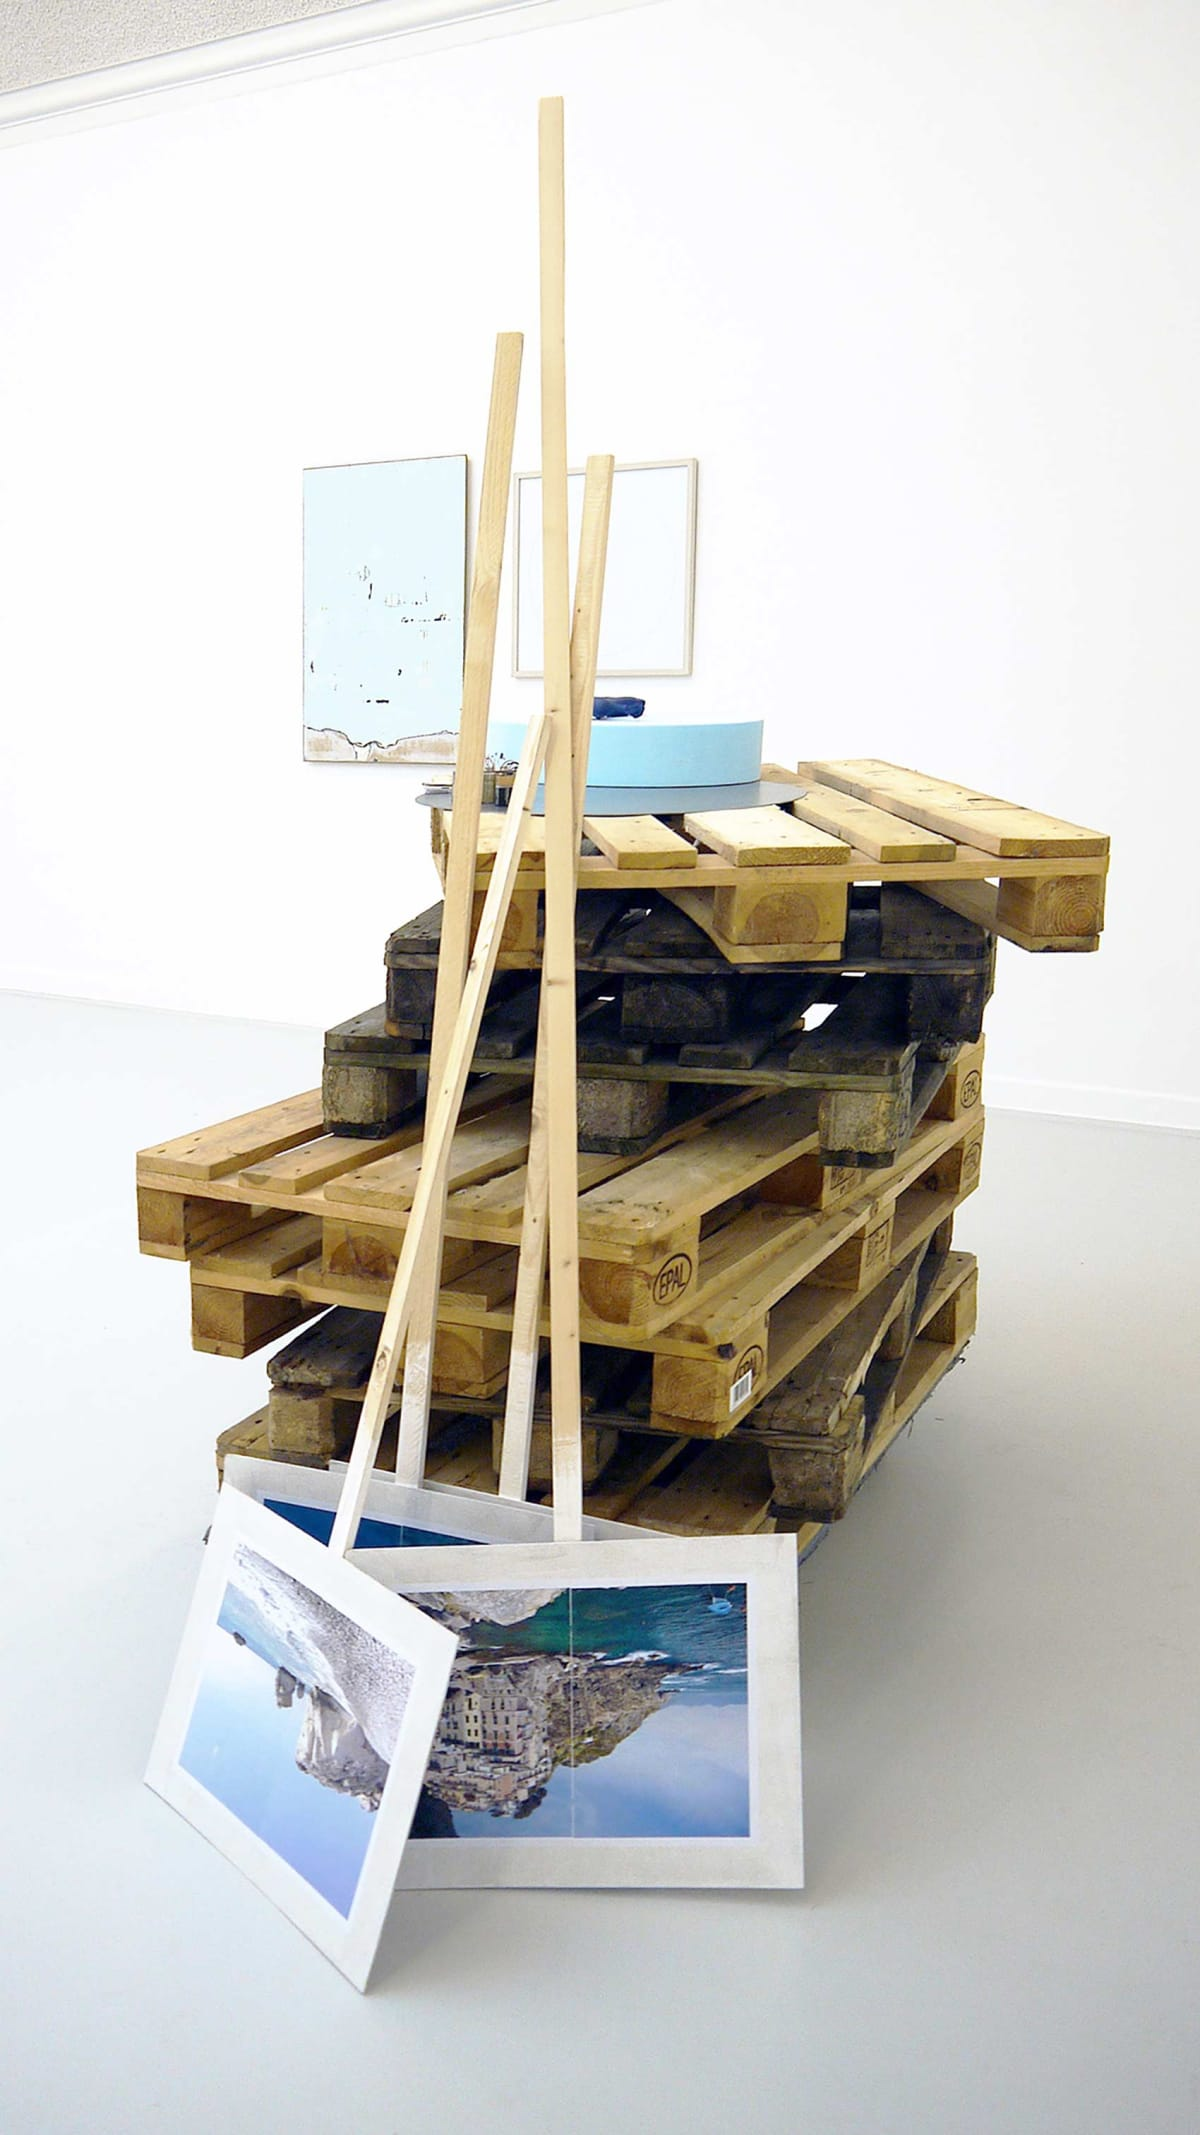 The Kunst Verein Konstanz present the artists Irena Eden & Stijn Lernout the image shows a white room artworks on the floor leaning on stacked palettes